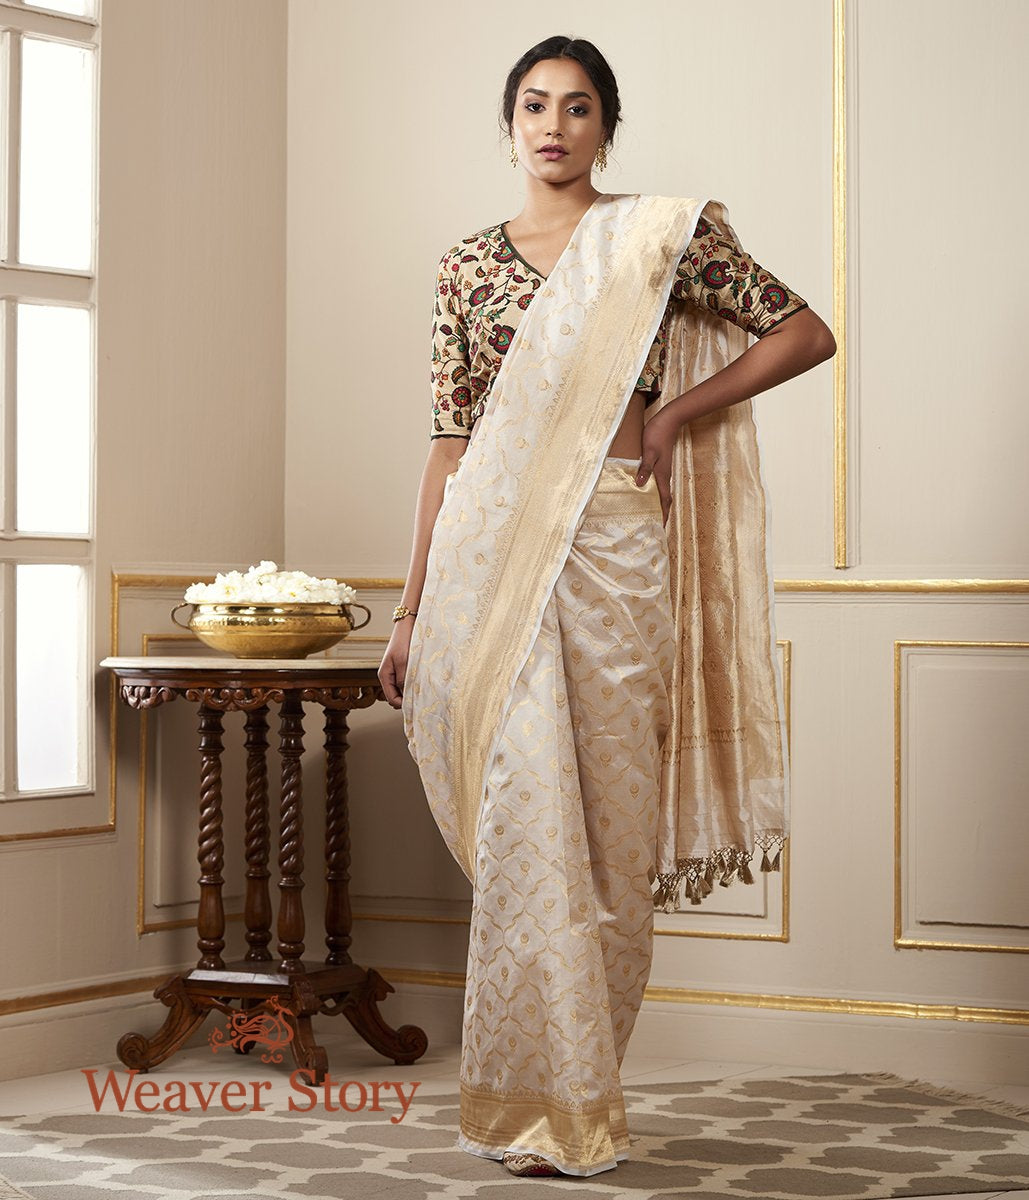 Handwoven Gold Tissue Saree with all over Zari Jaal